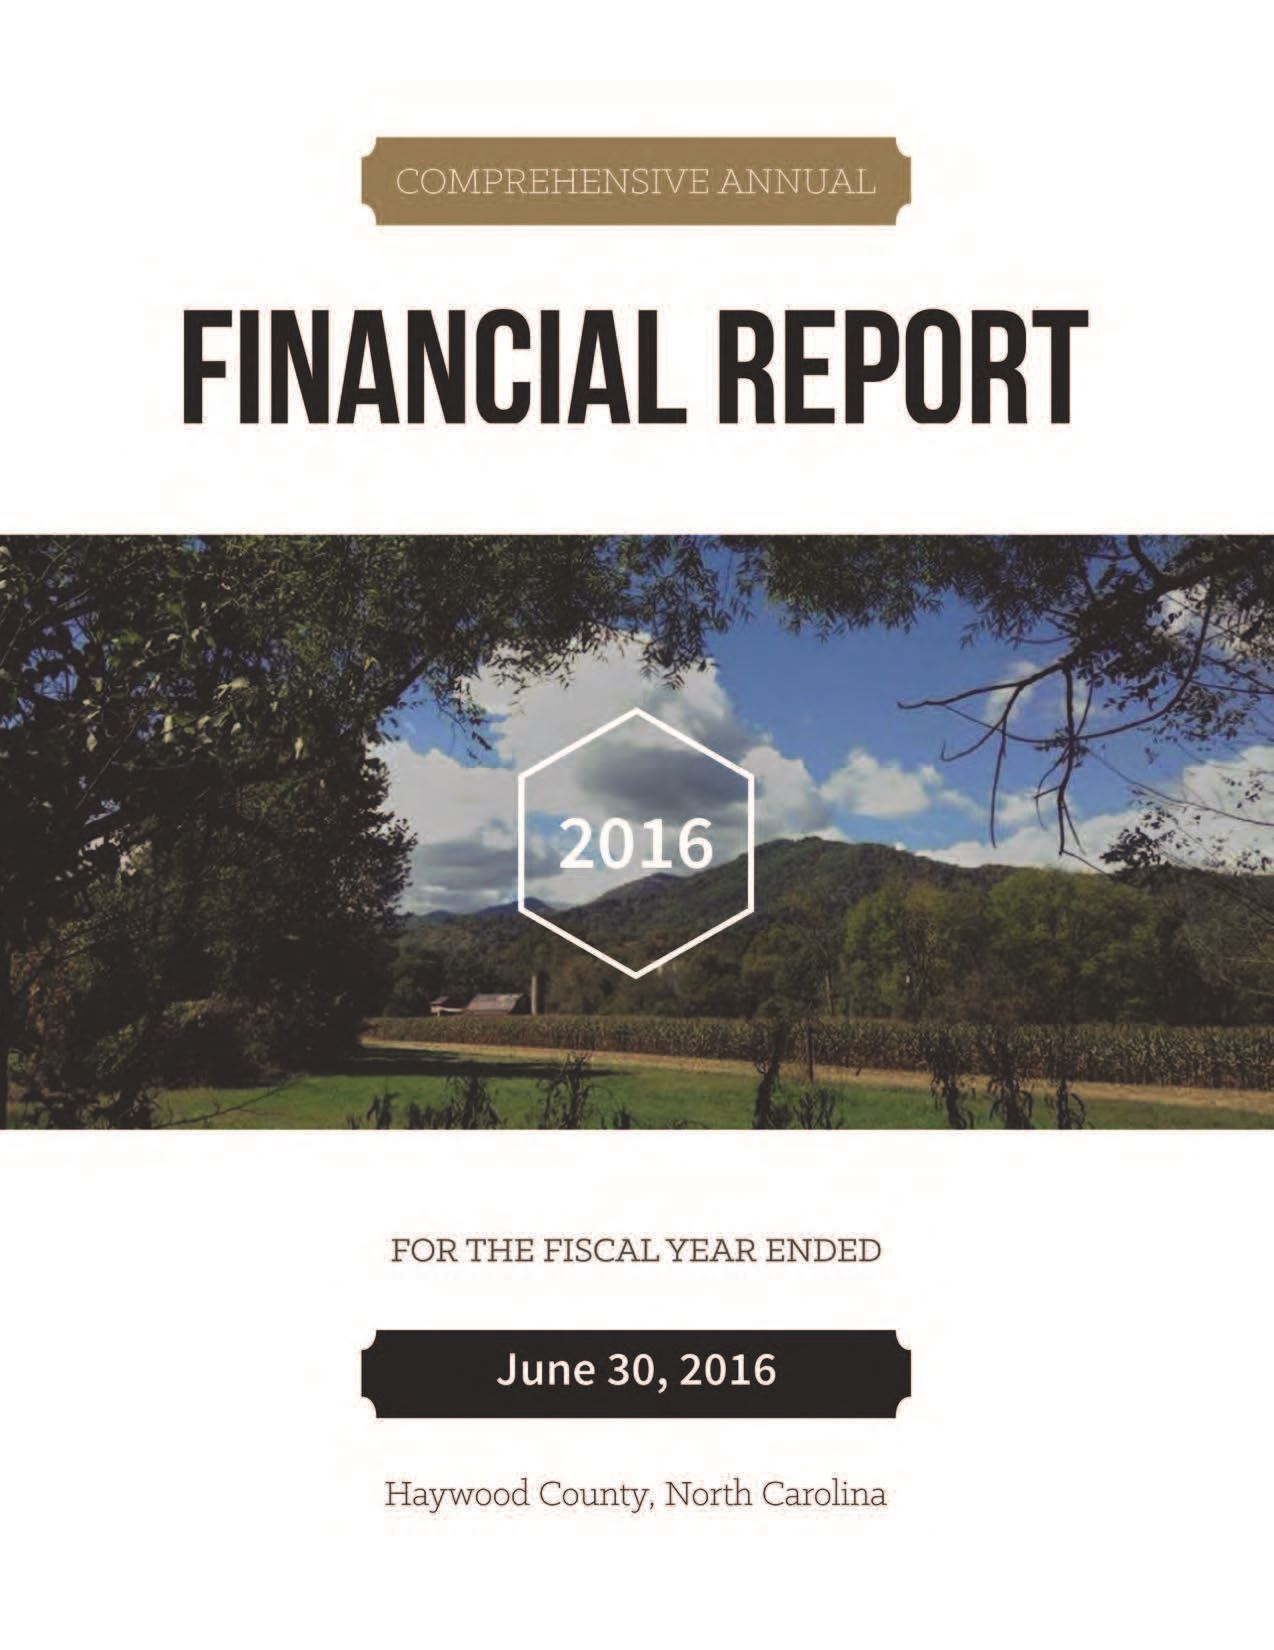 Comprehensive Annual Financial Report 2016 Cover Opens in new window